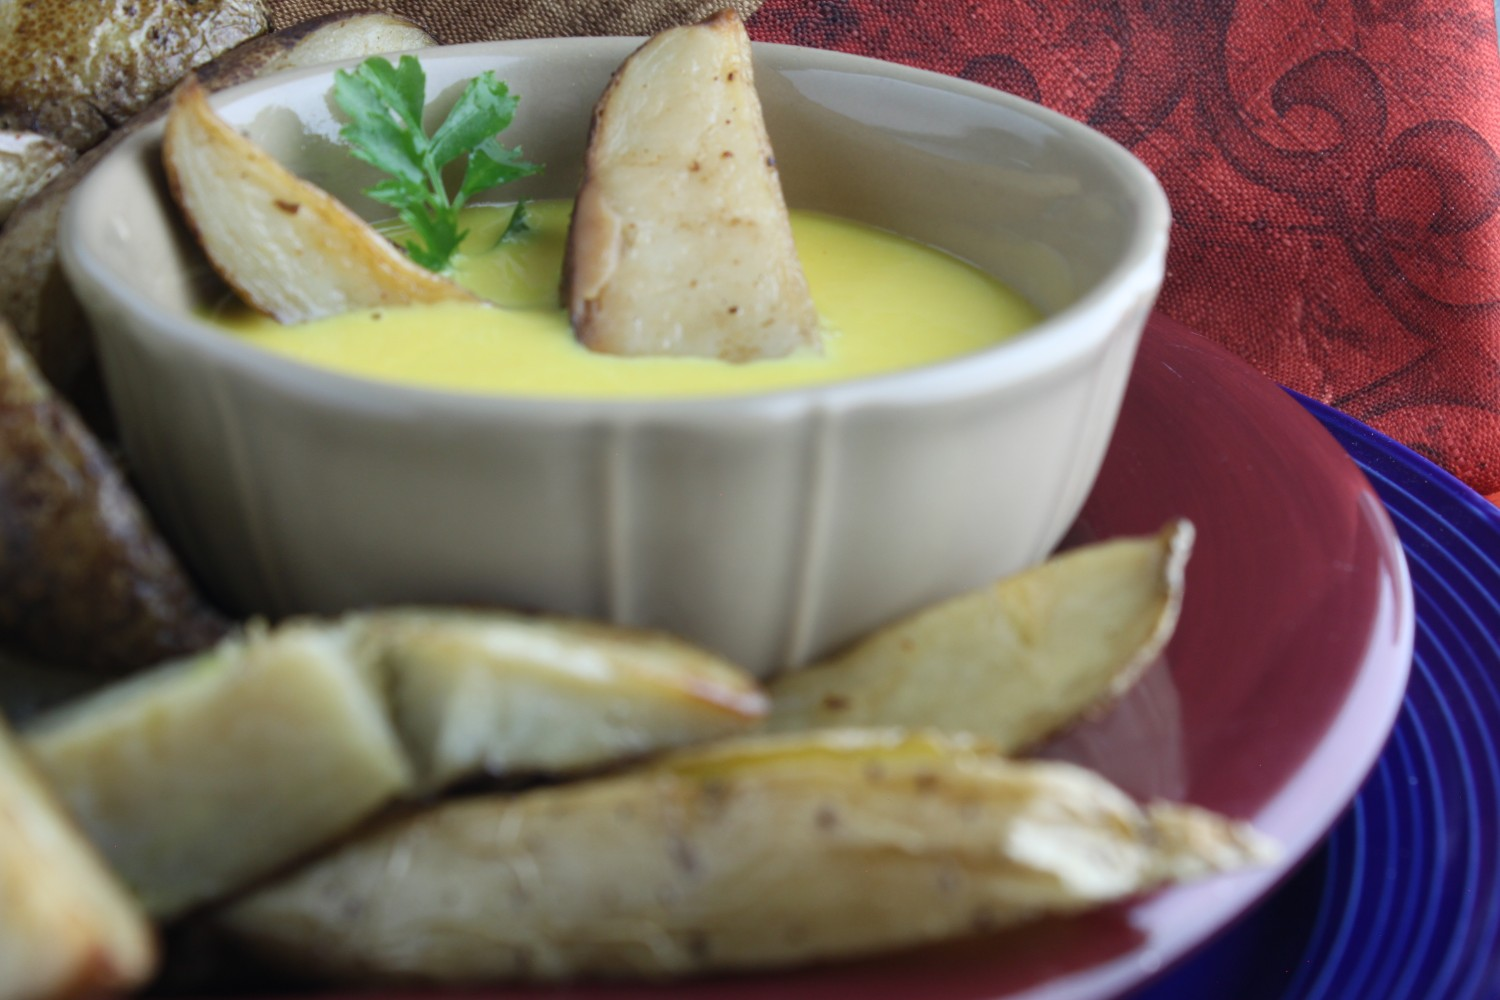 Potato Wedges in Tater Sweet Dipping Sauce